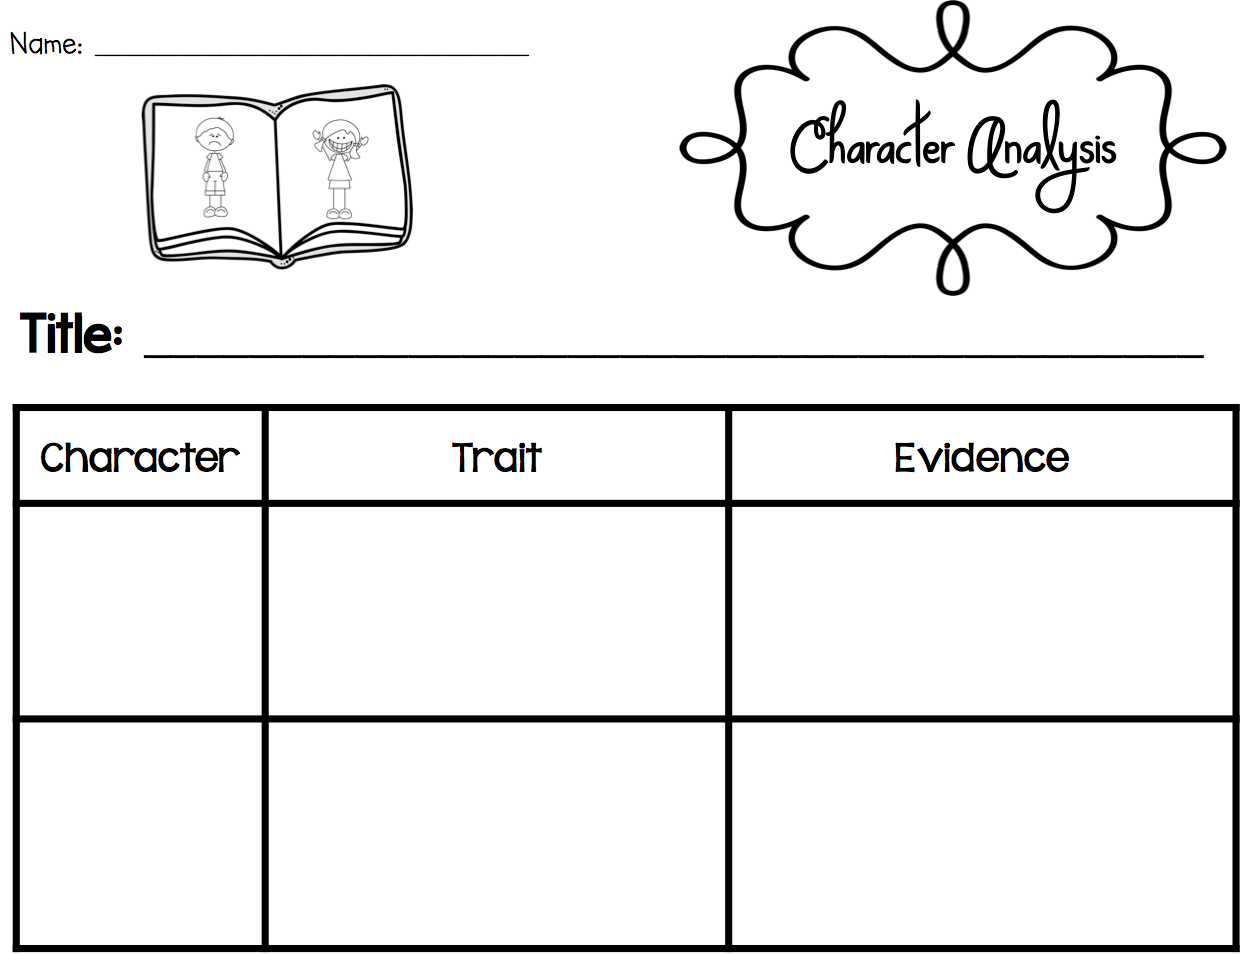 medium resolution of Teaching Character Analysis in the Primary Grades - Sarah's Teaching  Snippets   Teaching character